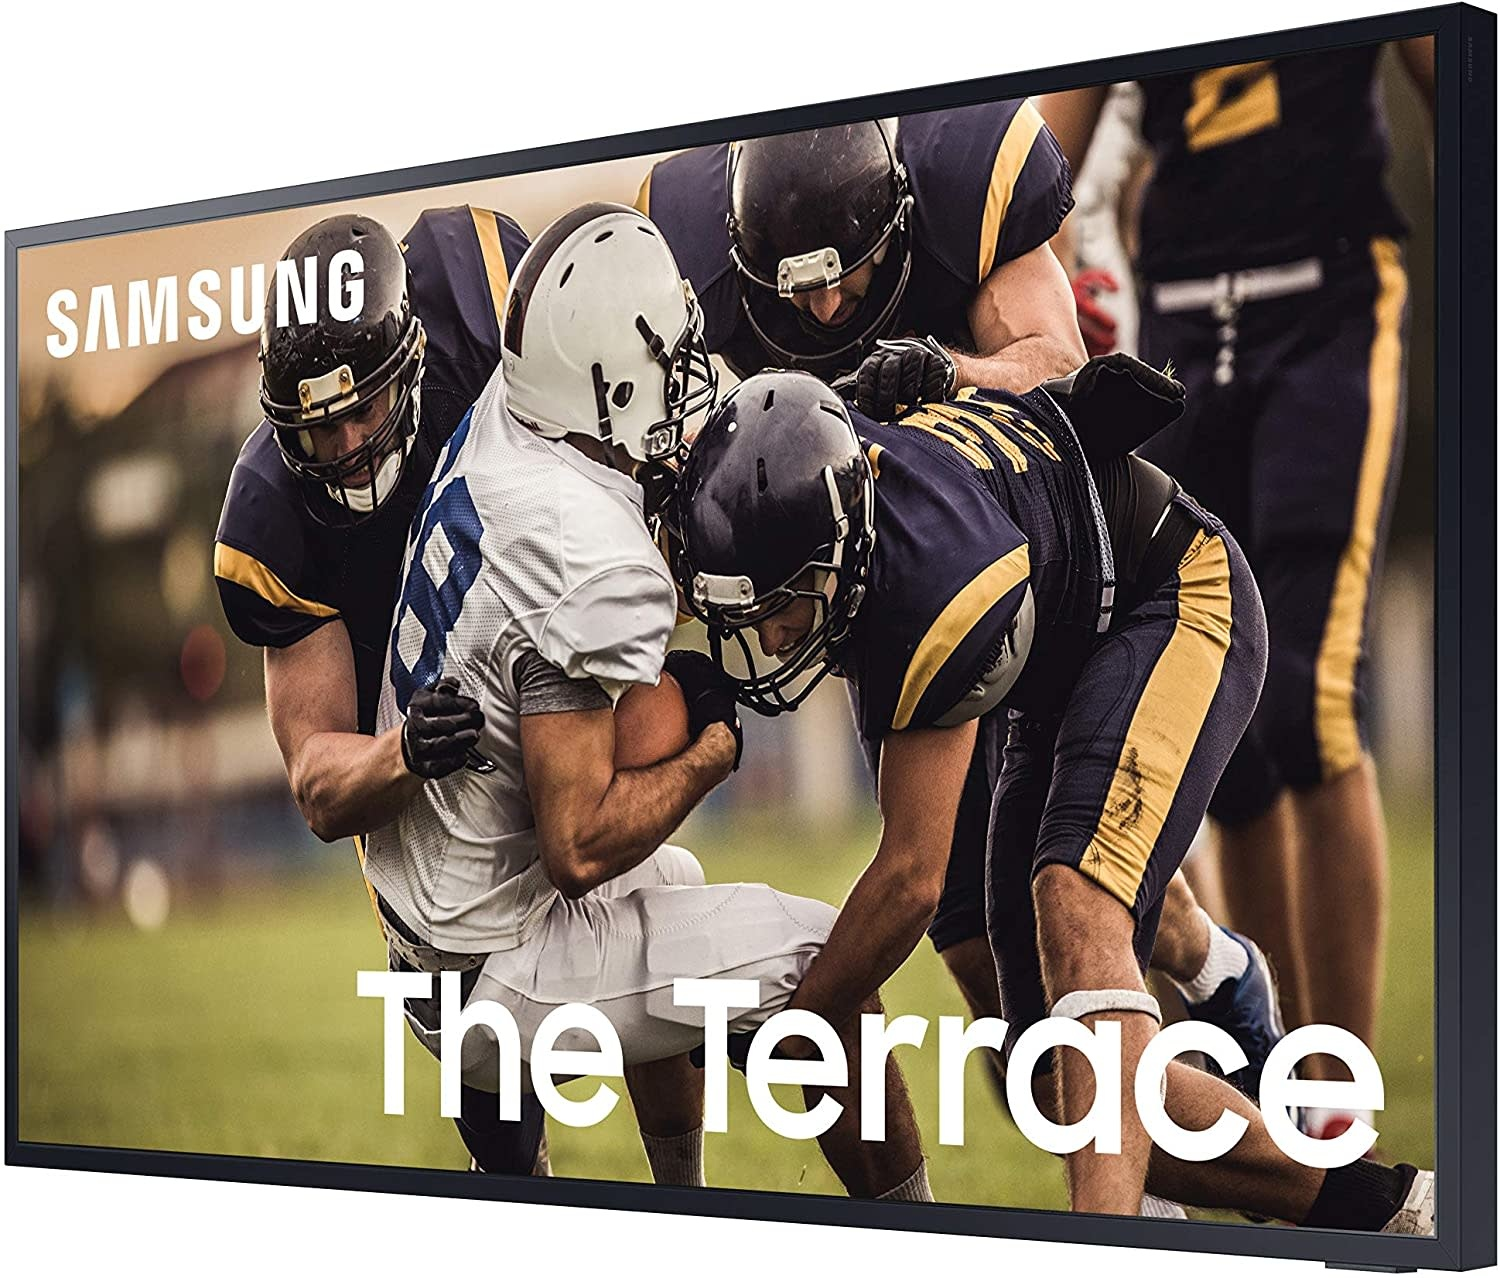 Samsung The Terrace QLED 4K UHD HDR Smart TV